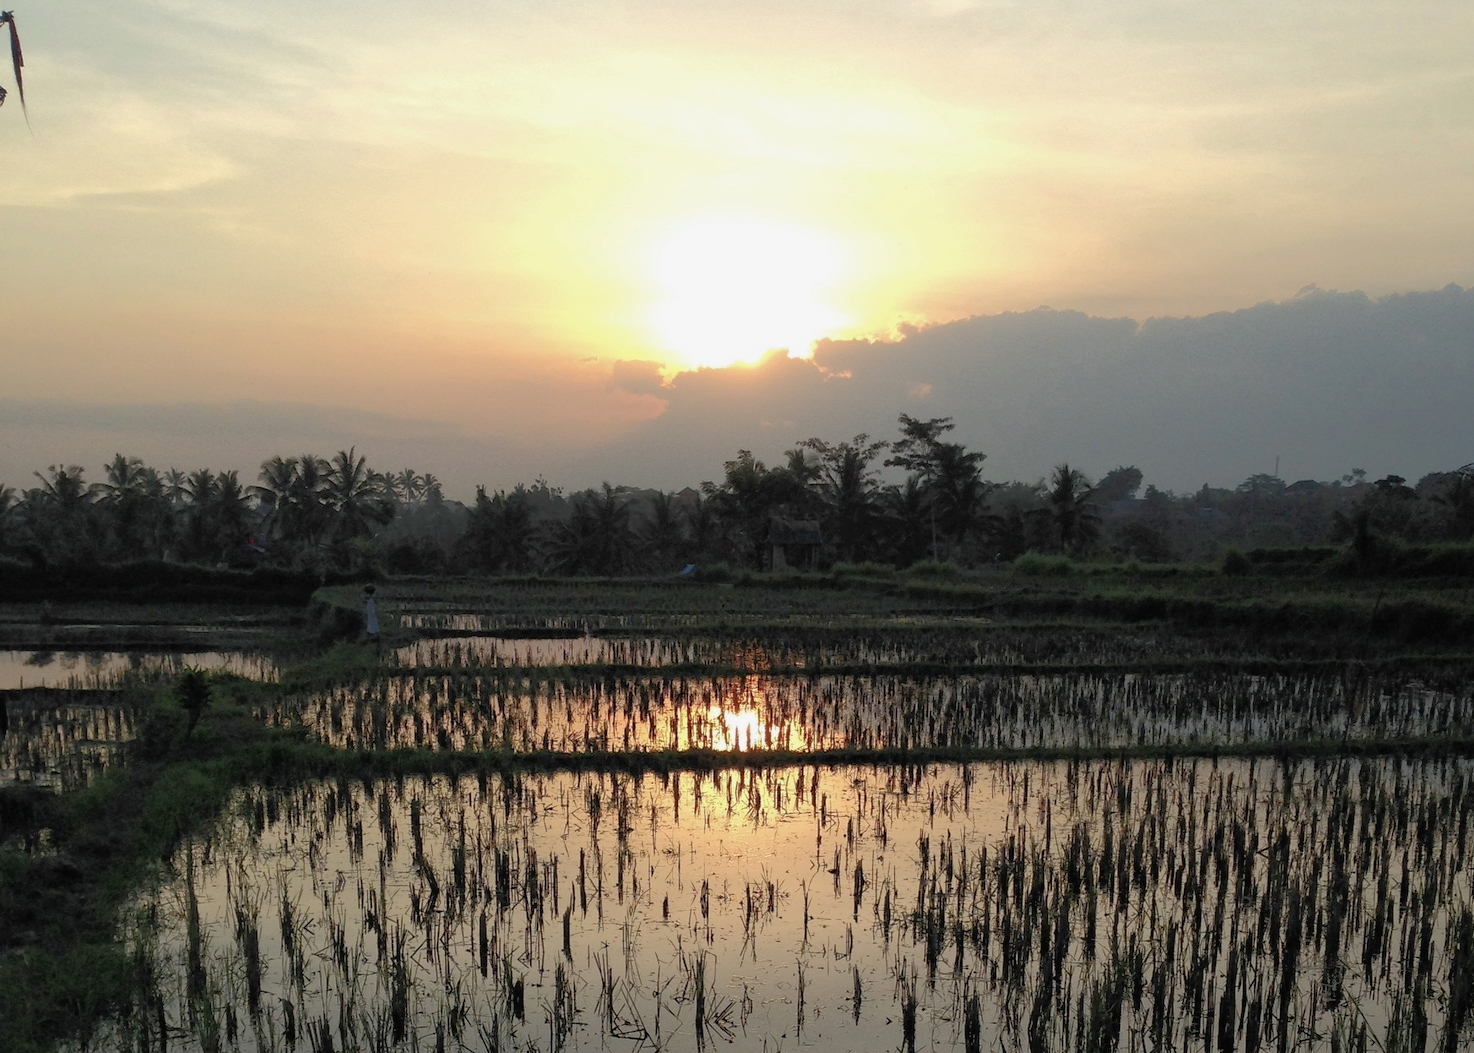 sunset over Sari Organik rice fields